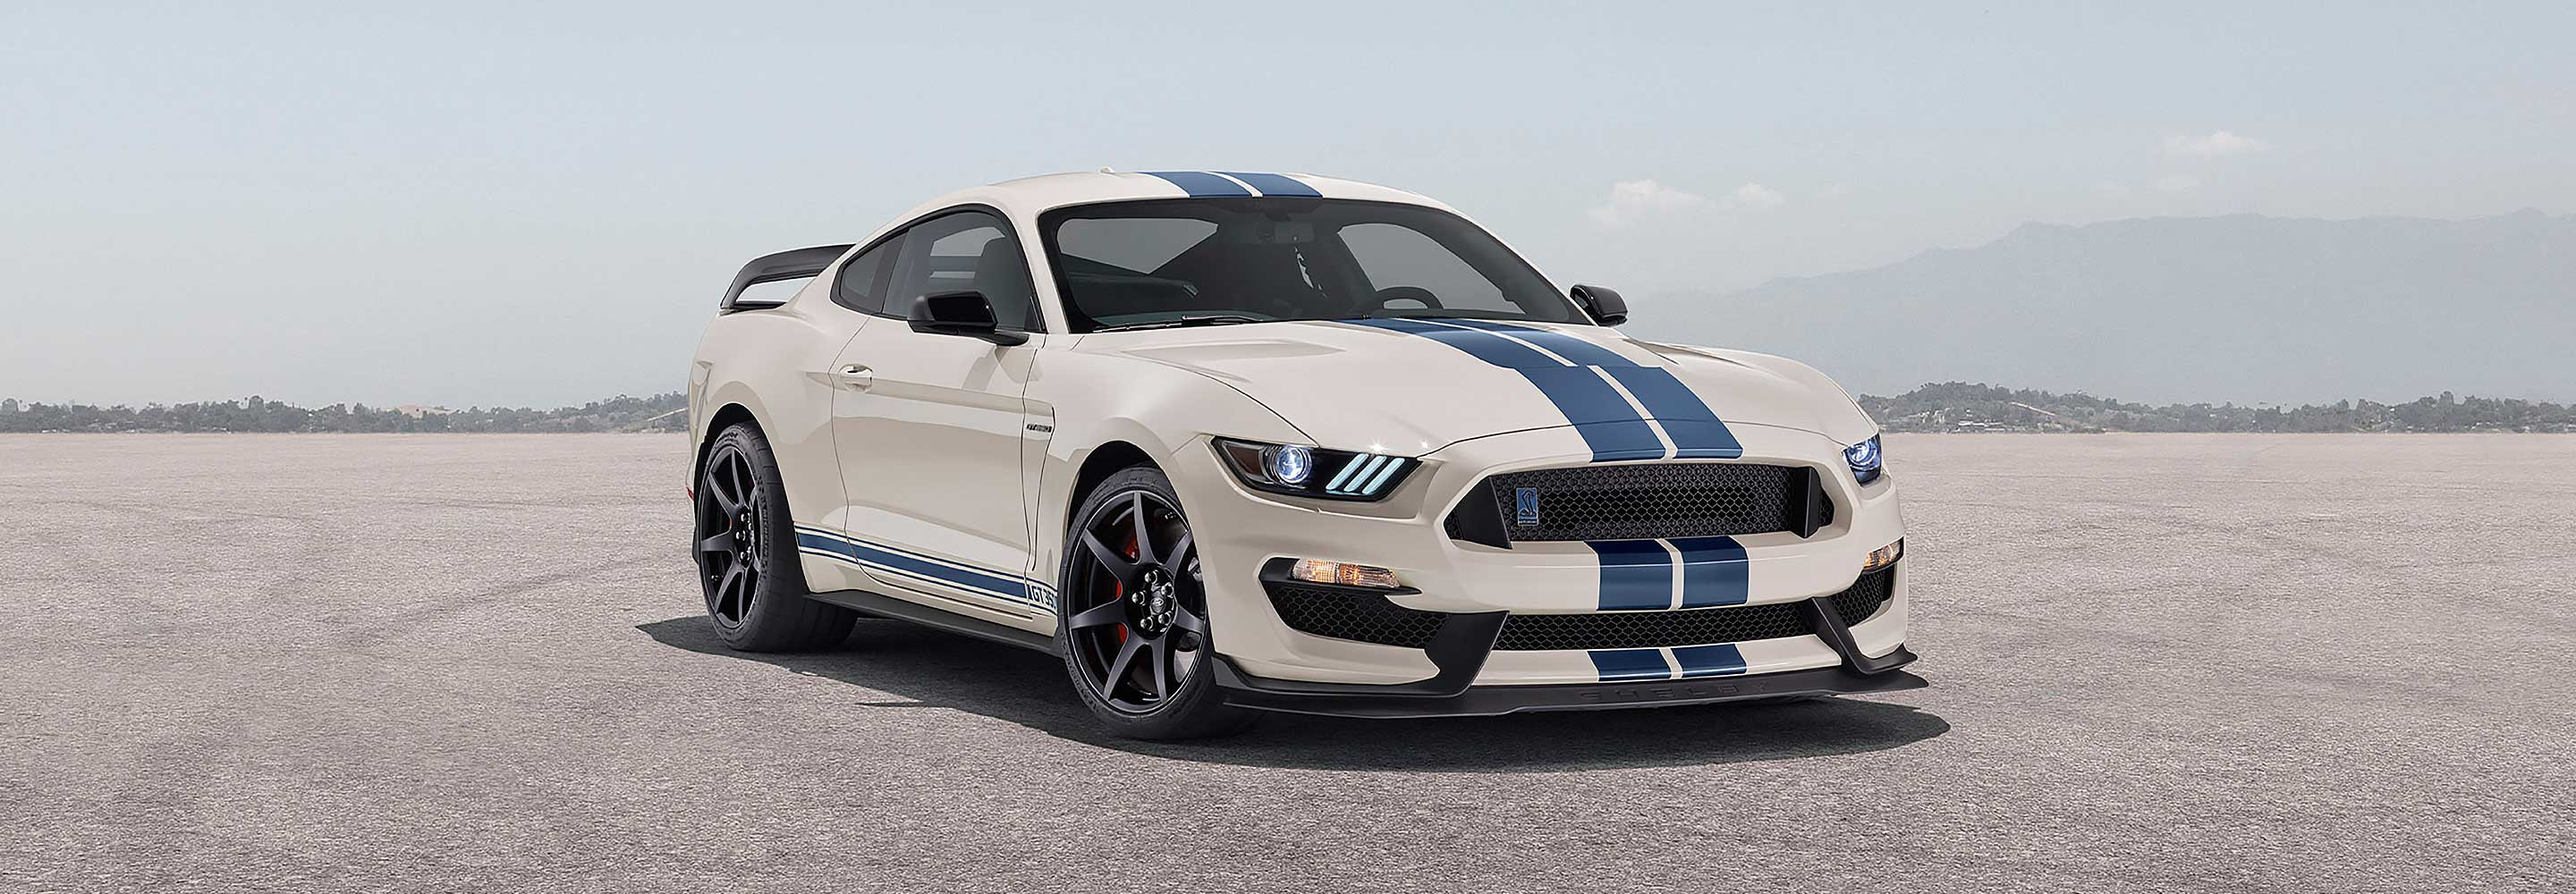 The Ford Mustang GT350 Heritage Edition